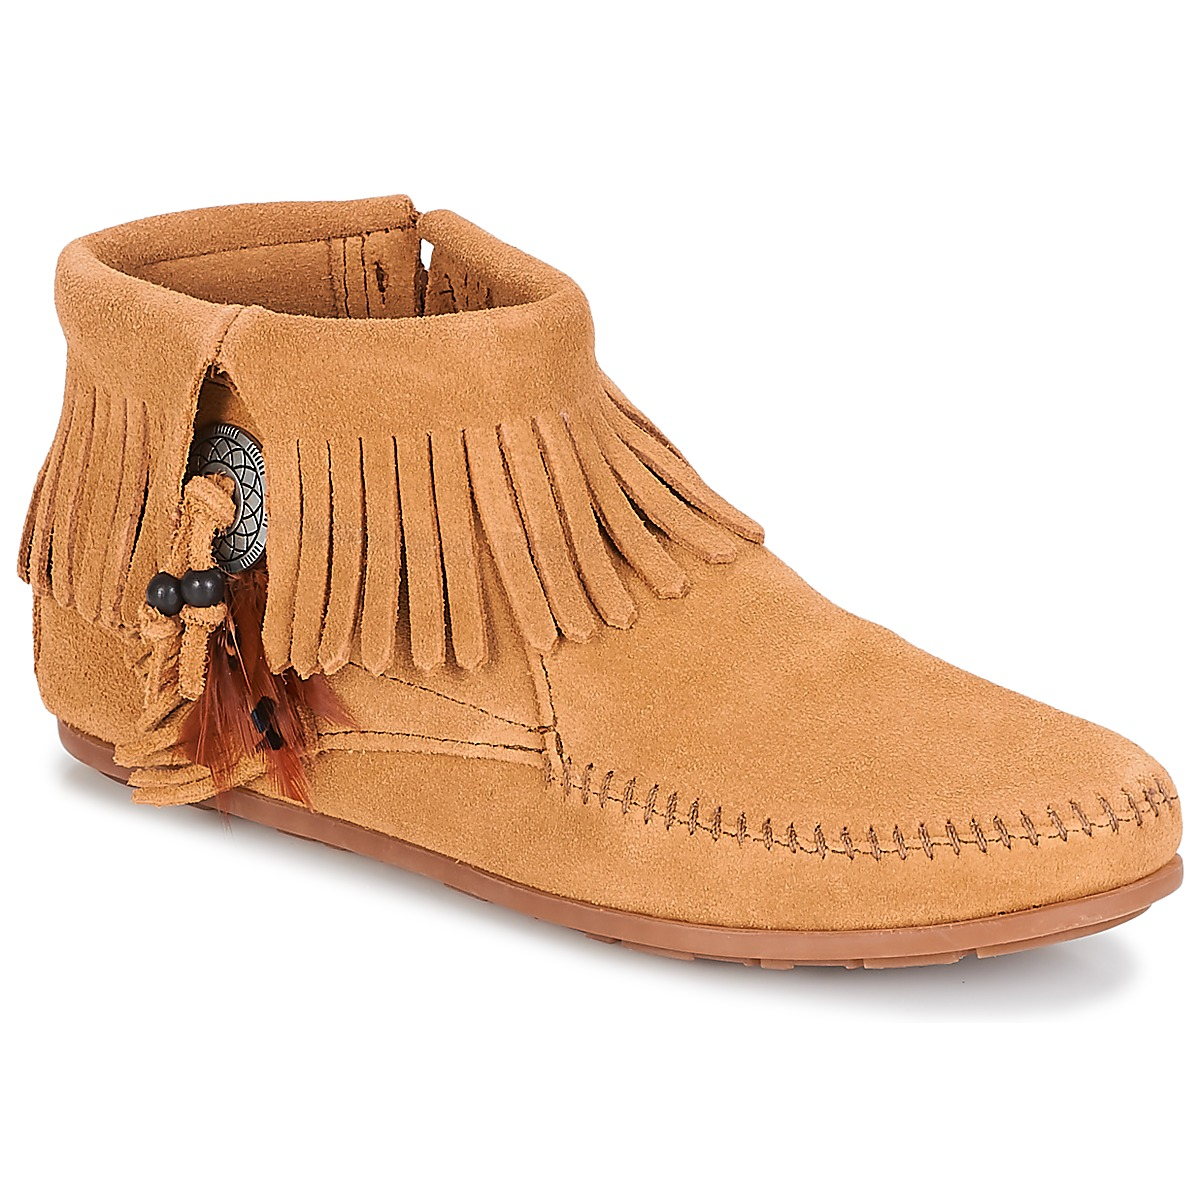 Minnetonka CONCHO FEATHER SIDE ZIP BOOT Taupe